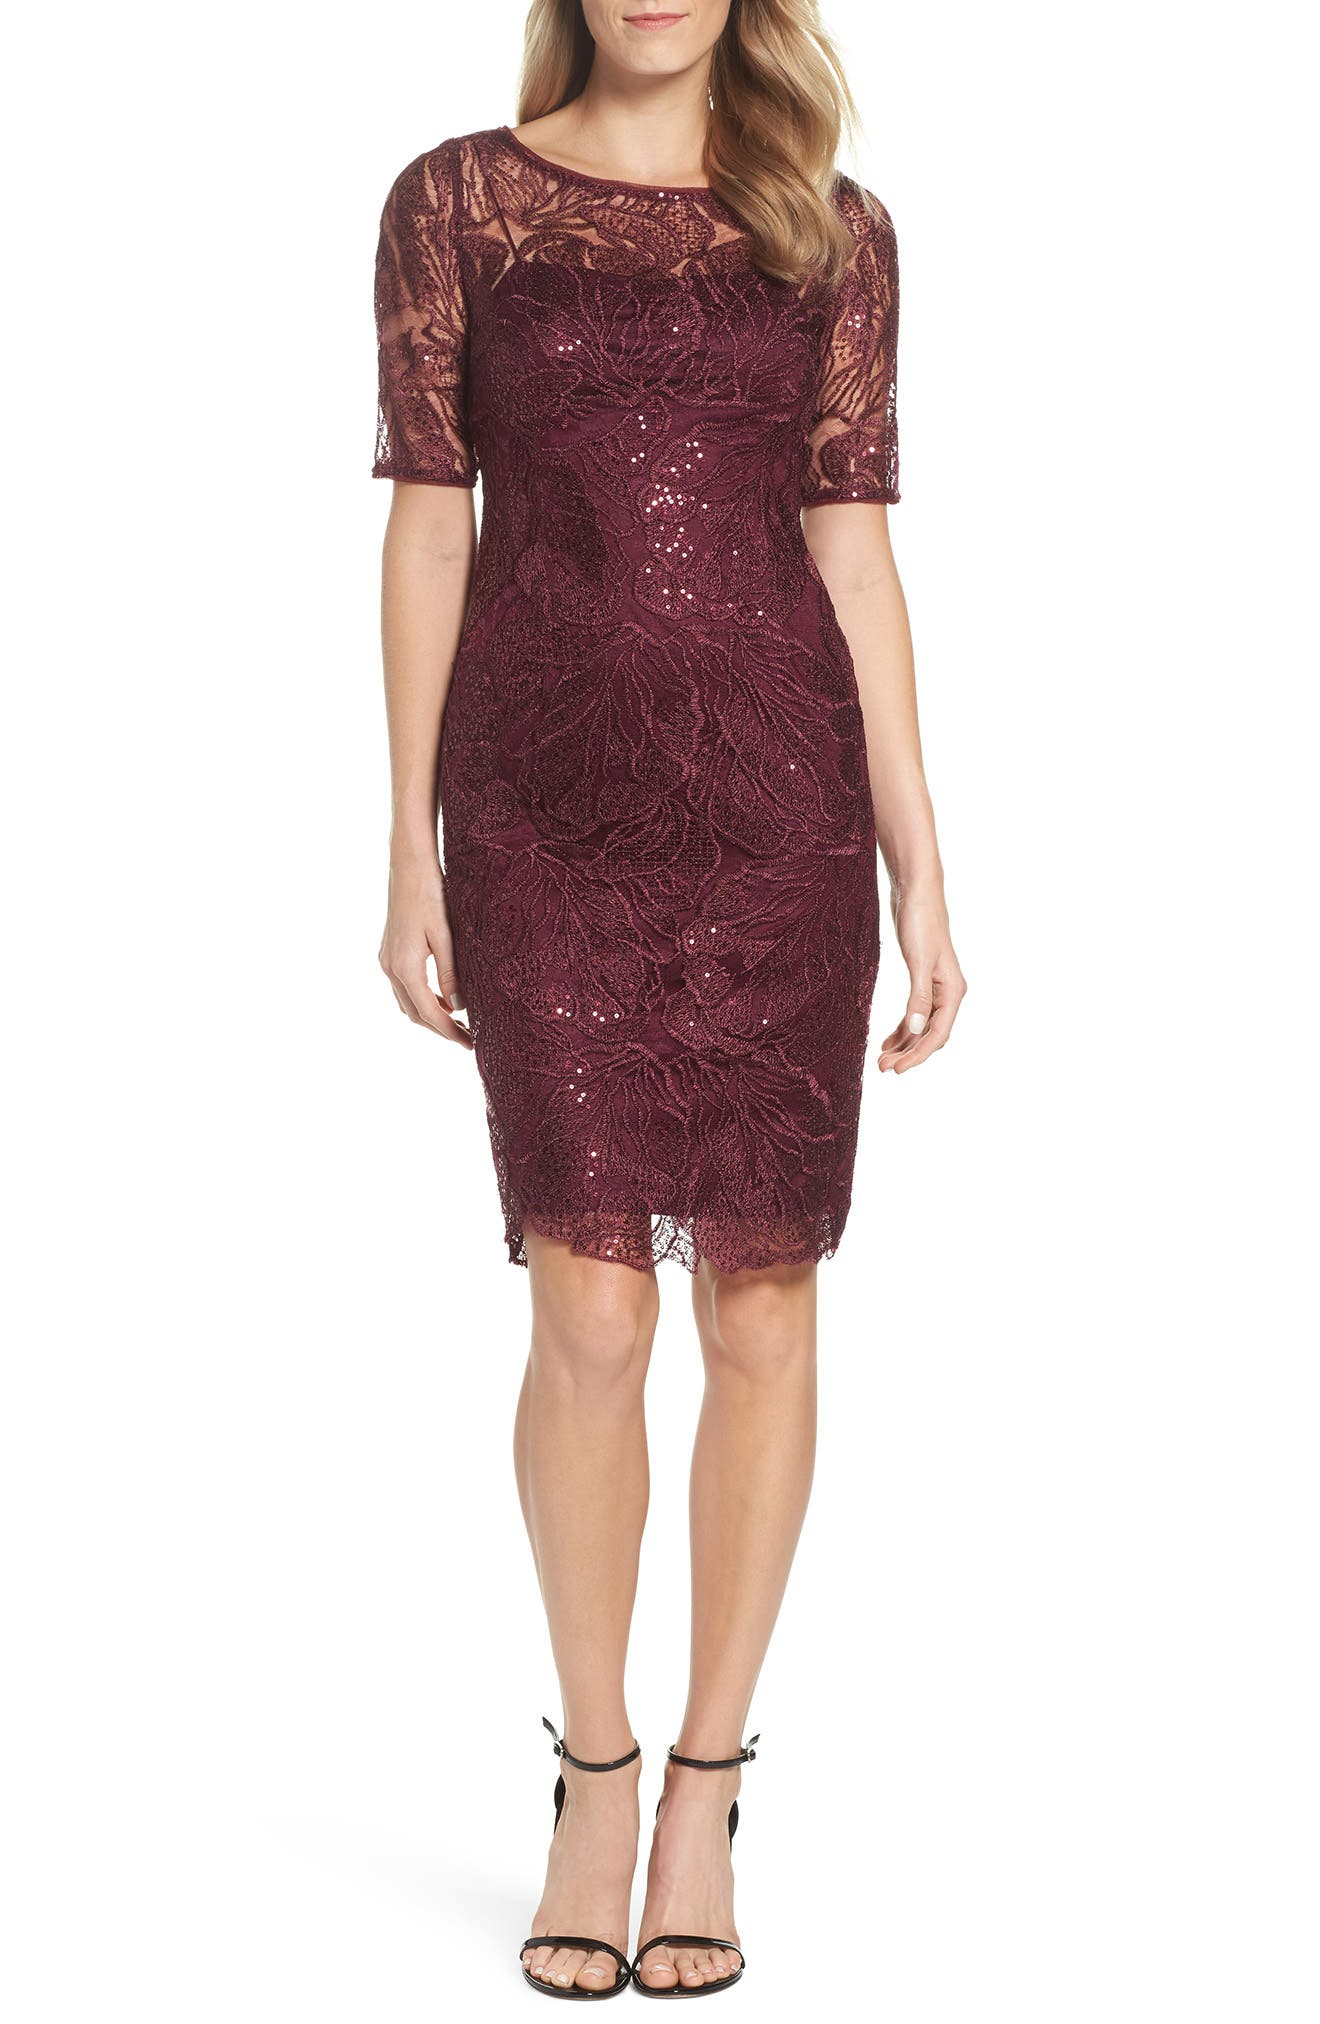 Adrianna Papell Sequin Embellished Sheath Dress (Regular & Petite)